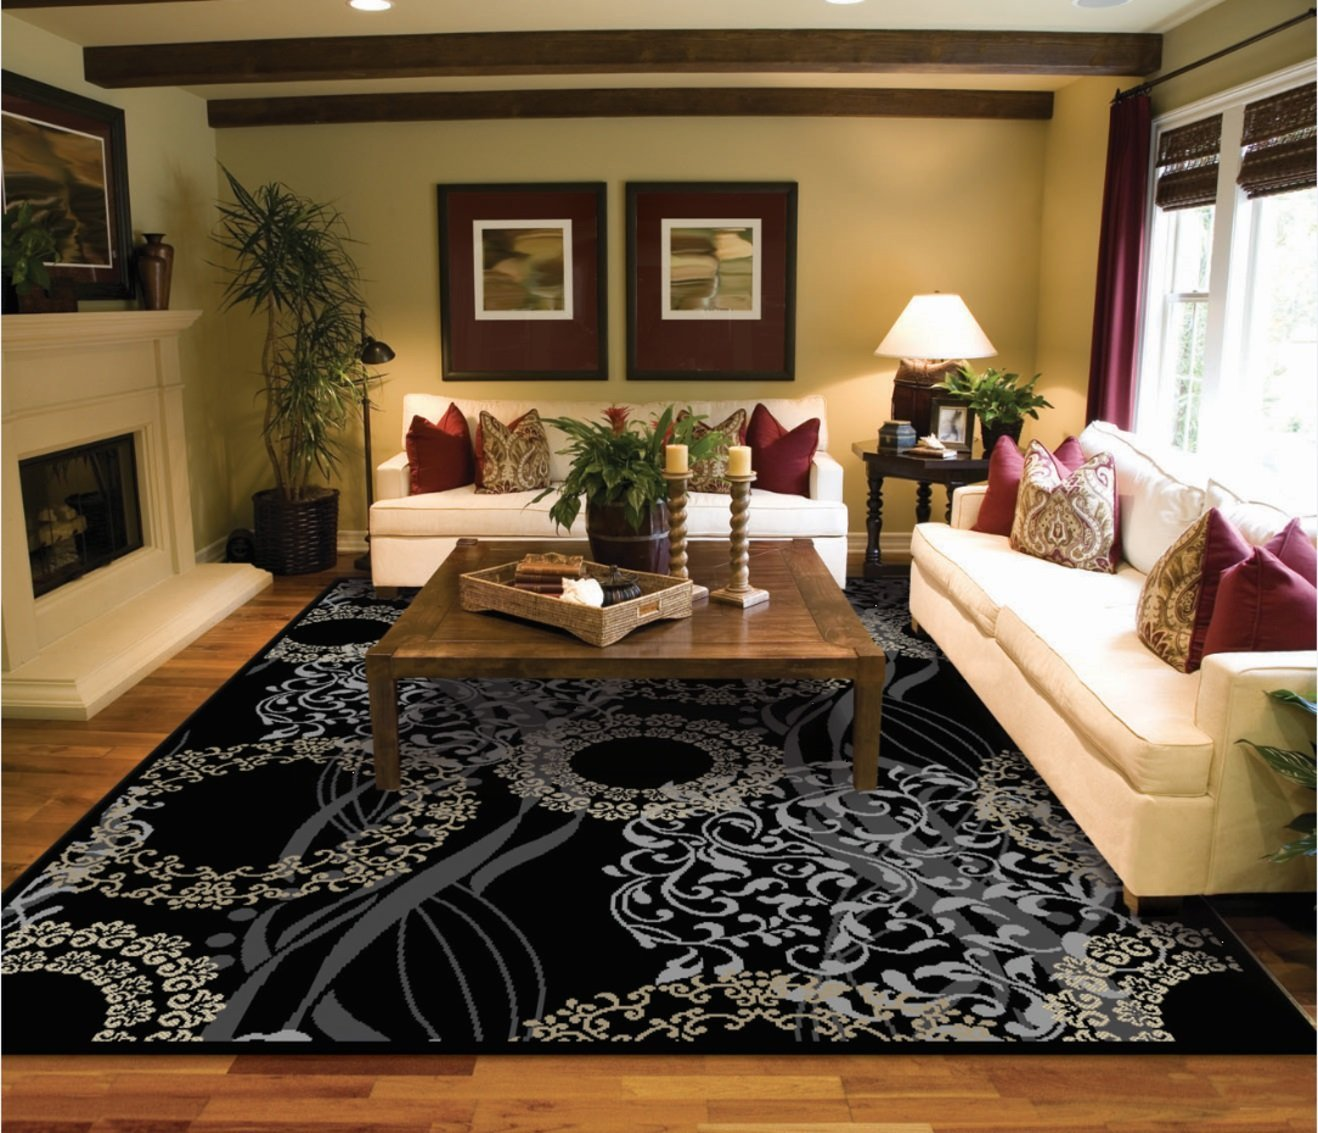 Etonnant Contemporary Area Rugs 5x7 Area Rugs On Clearance 5 By 7 Rug For Living Room  Ivory